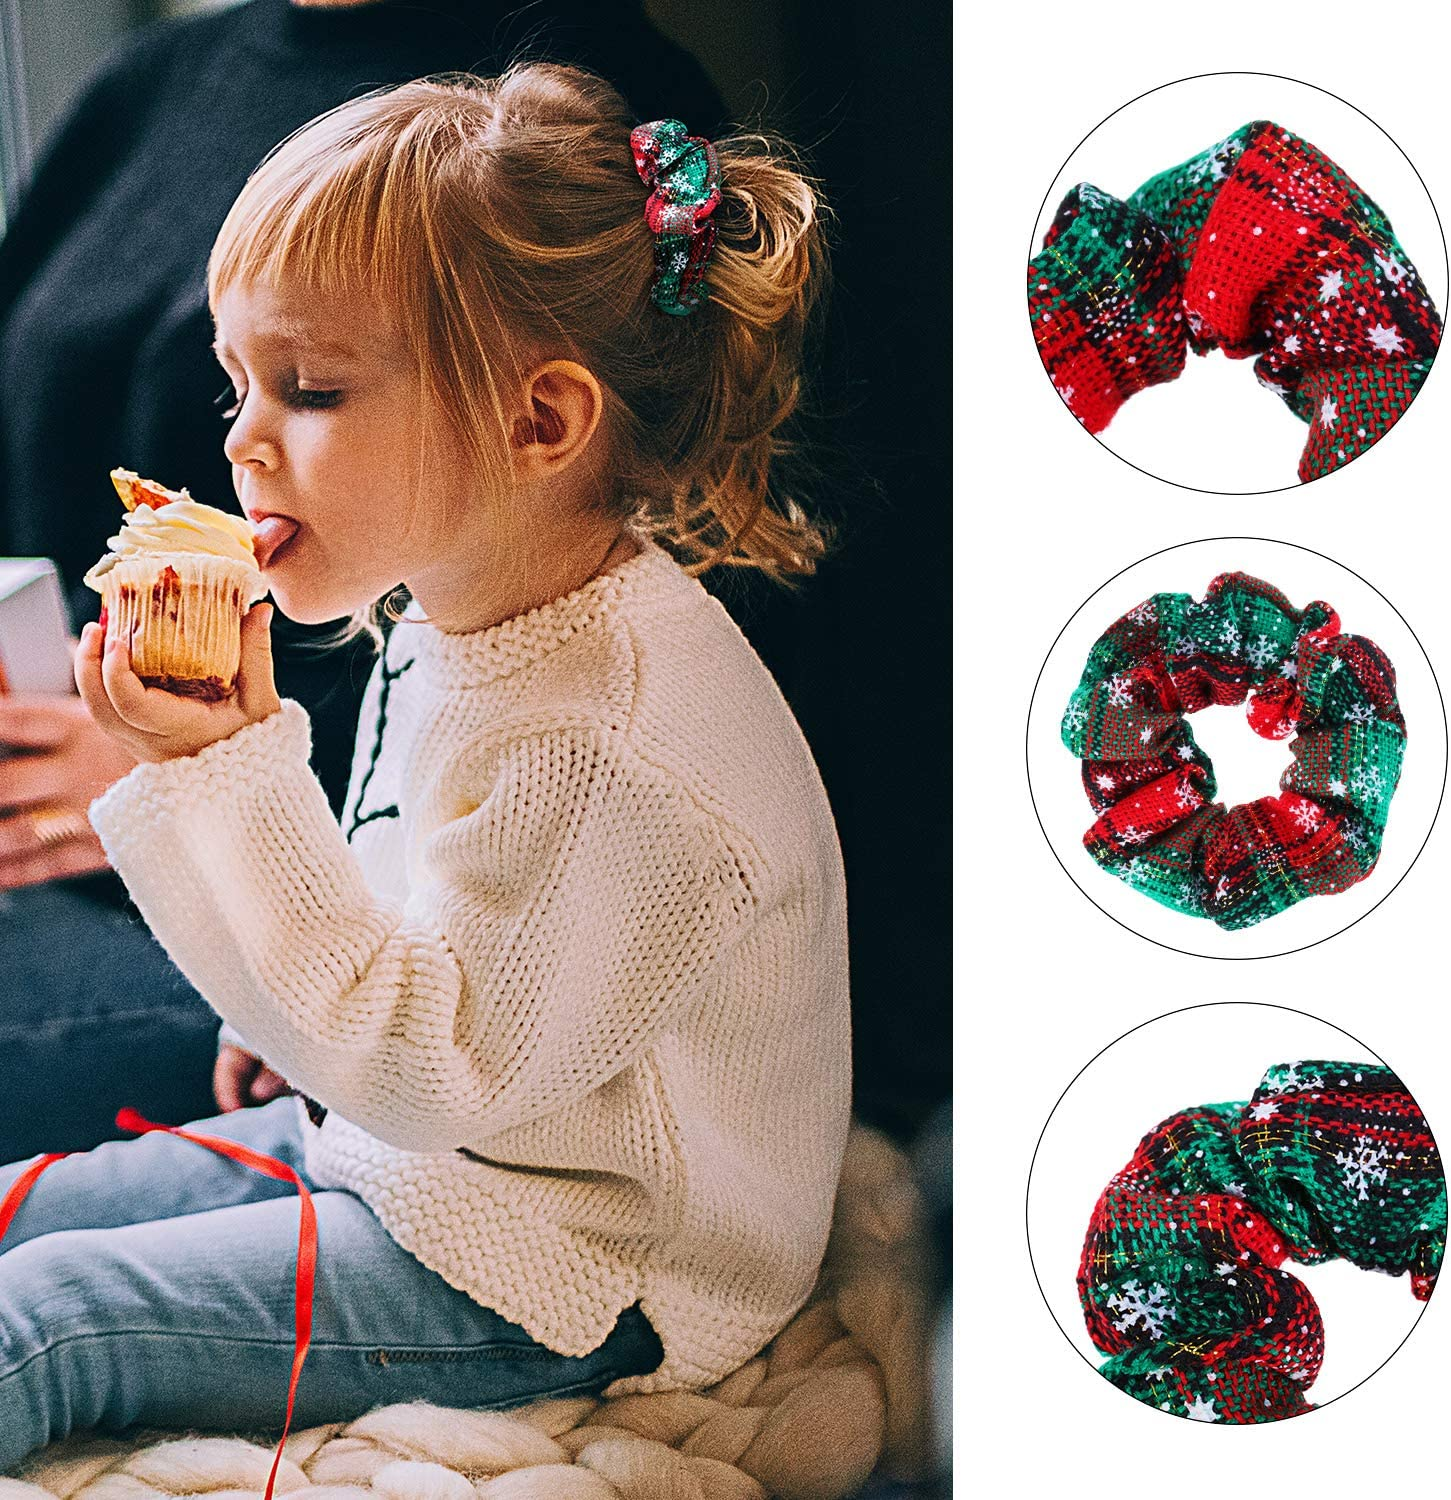 10 Pieces Christmas Headband with Knot Design Red Plaid and Snow Print Headband Hair Band Headband Headwear Christmas Hair Scrunchies Hair Accessories for Women and Girls